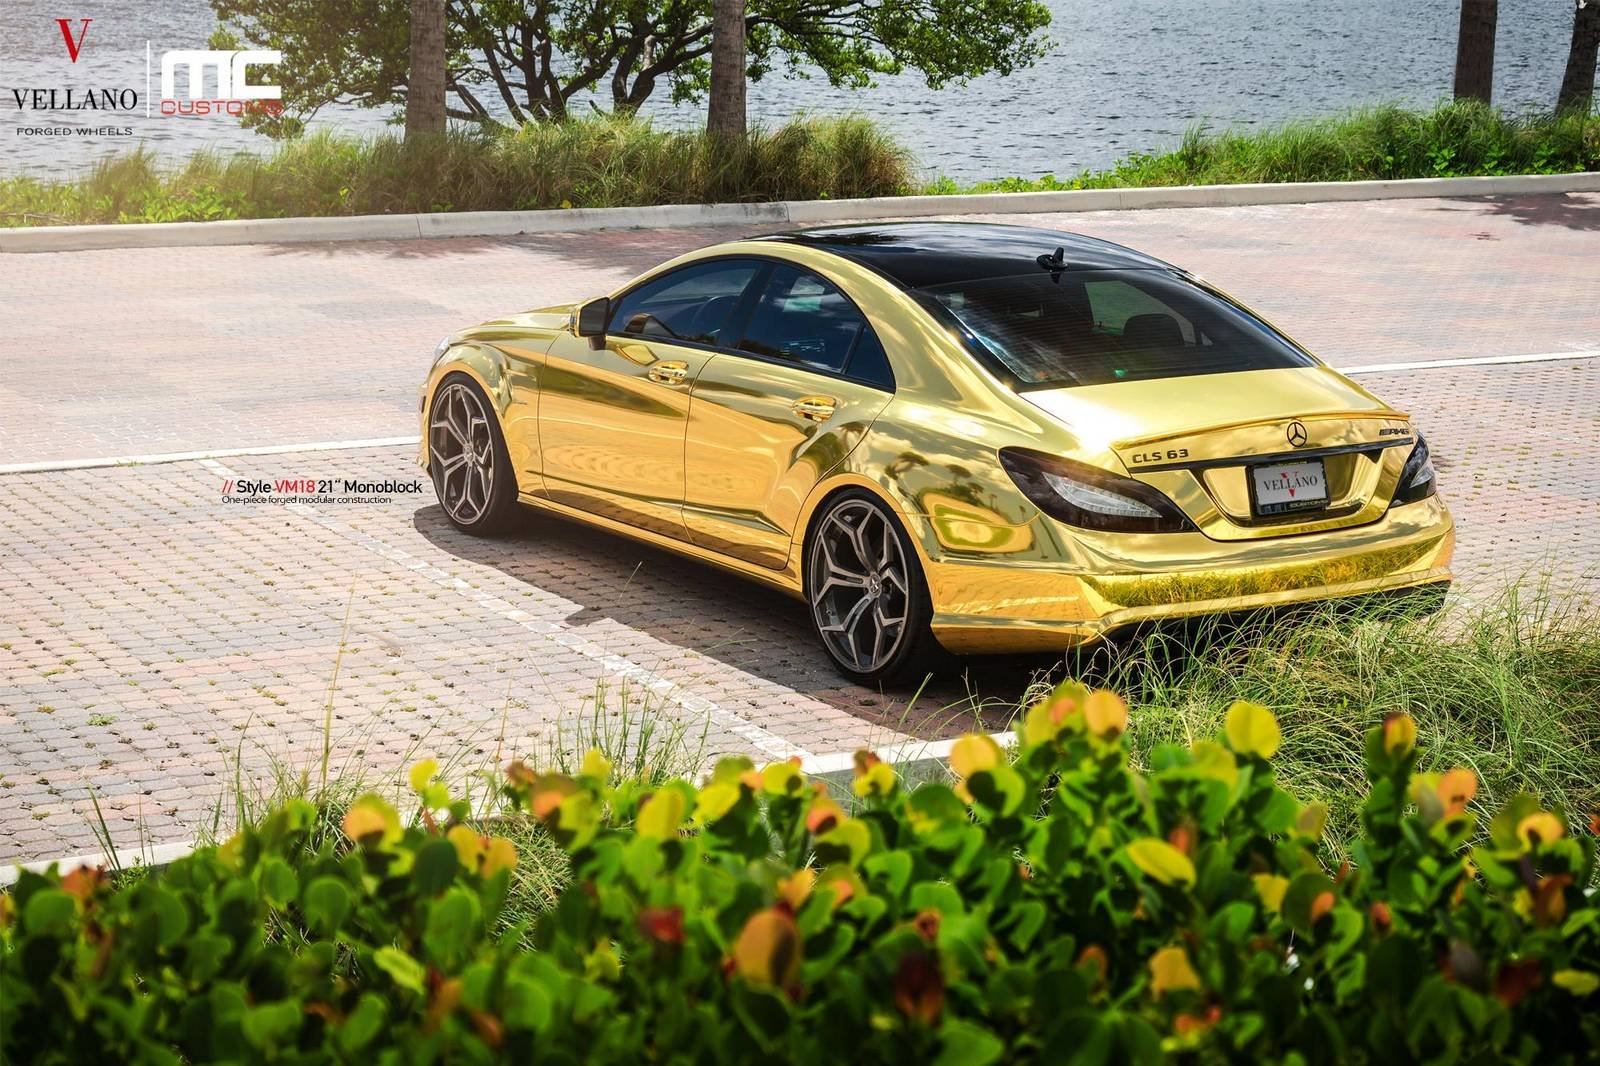 Mercedes Cls 63 Amg Cars Gold Chrome Wrapping Tuning